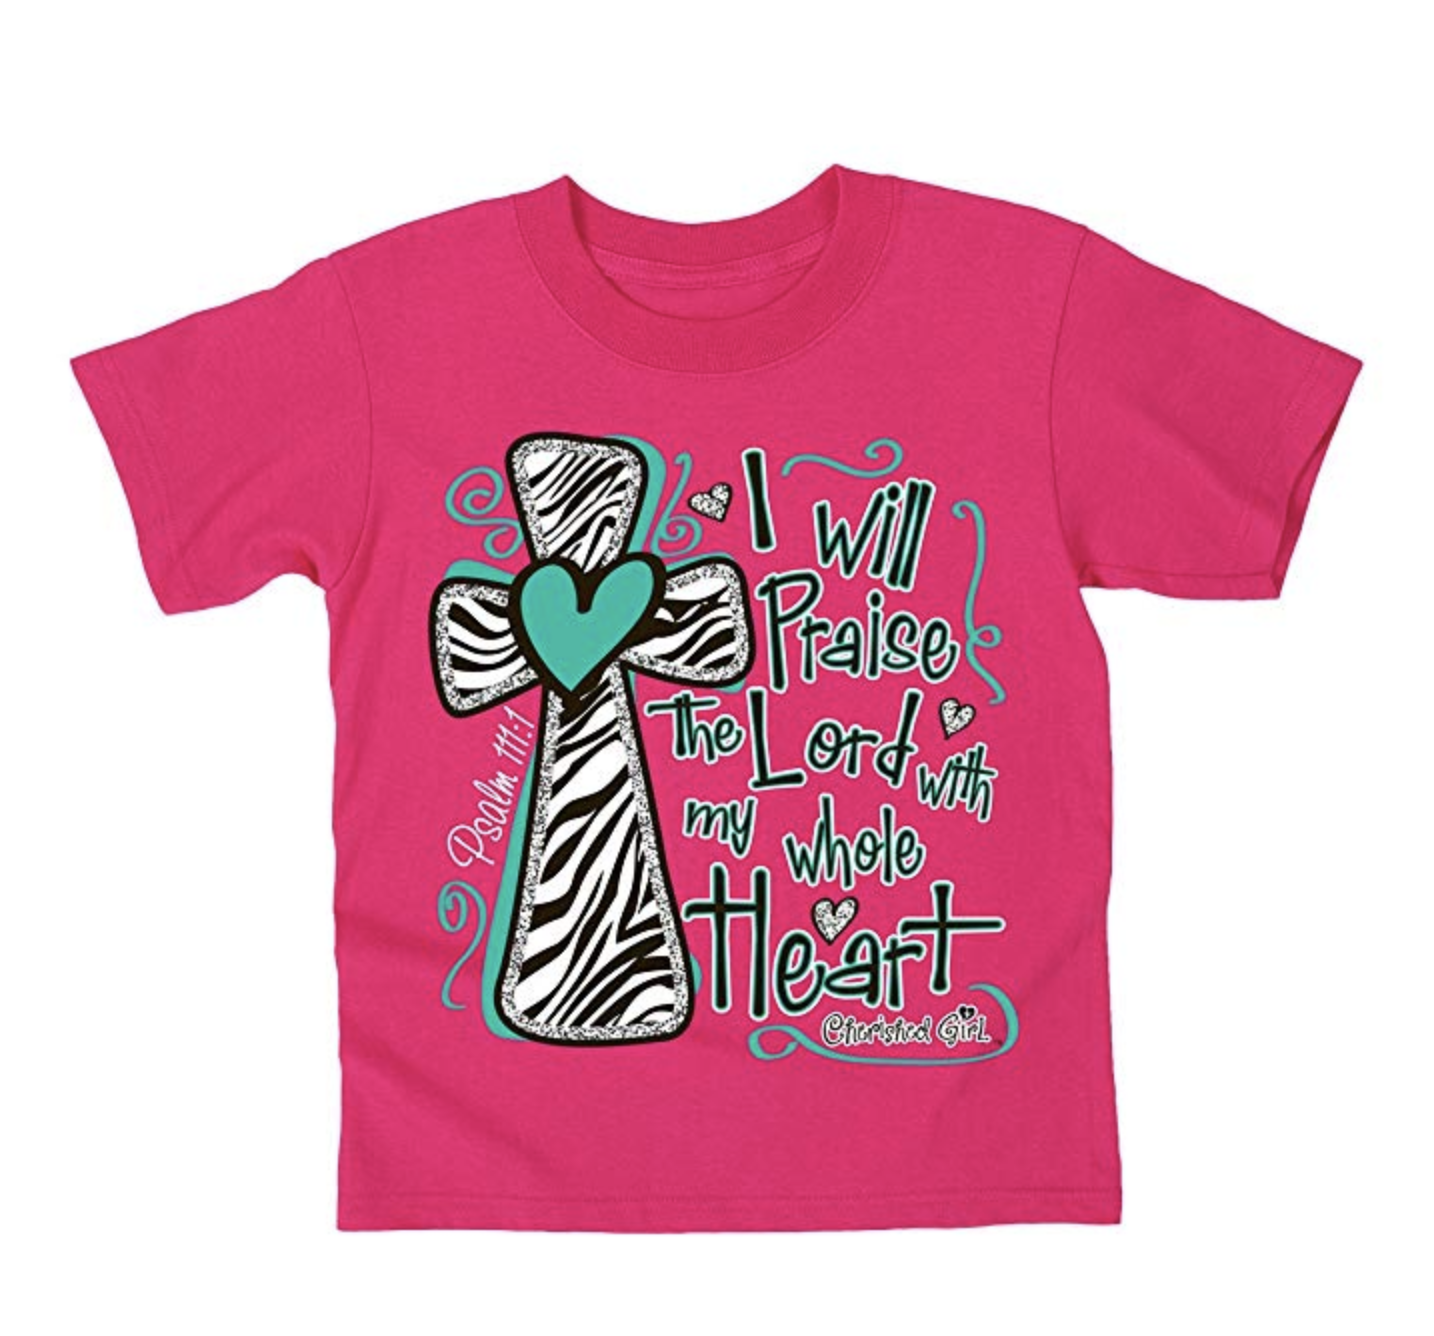 Christian Birthday Gifts for Girls, christian gifts for teenage girl